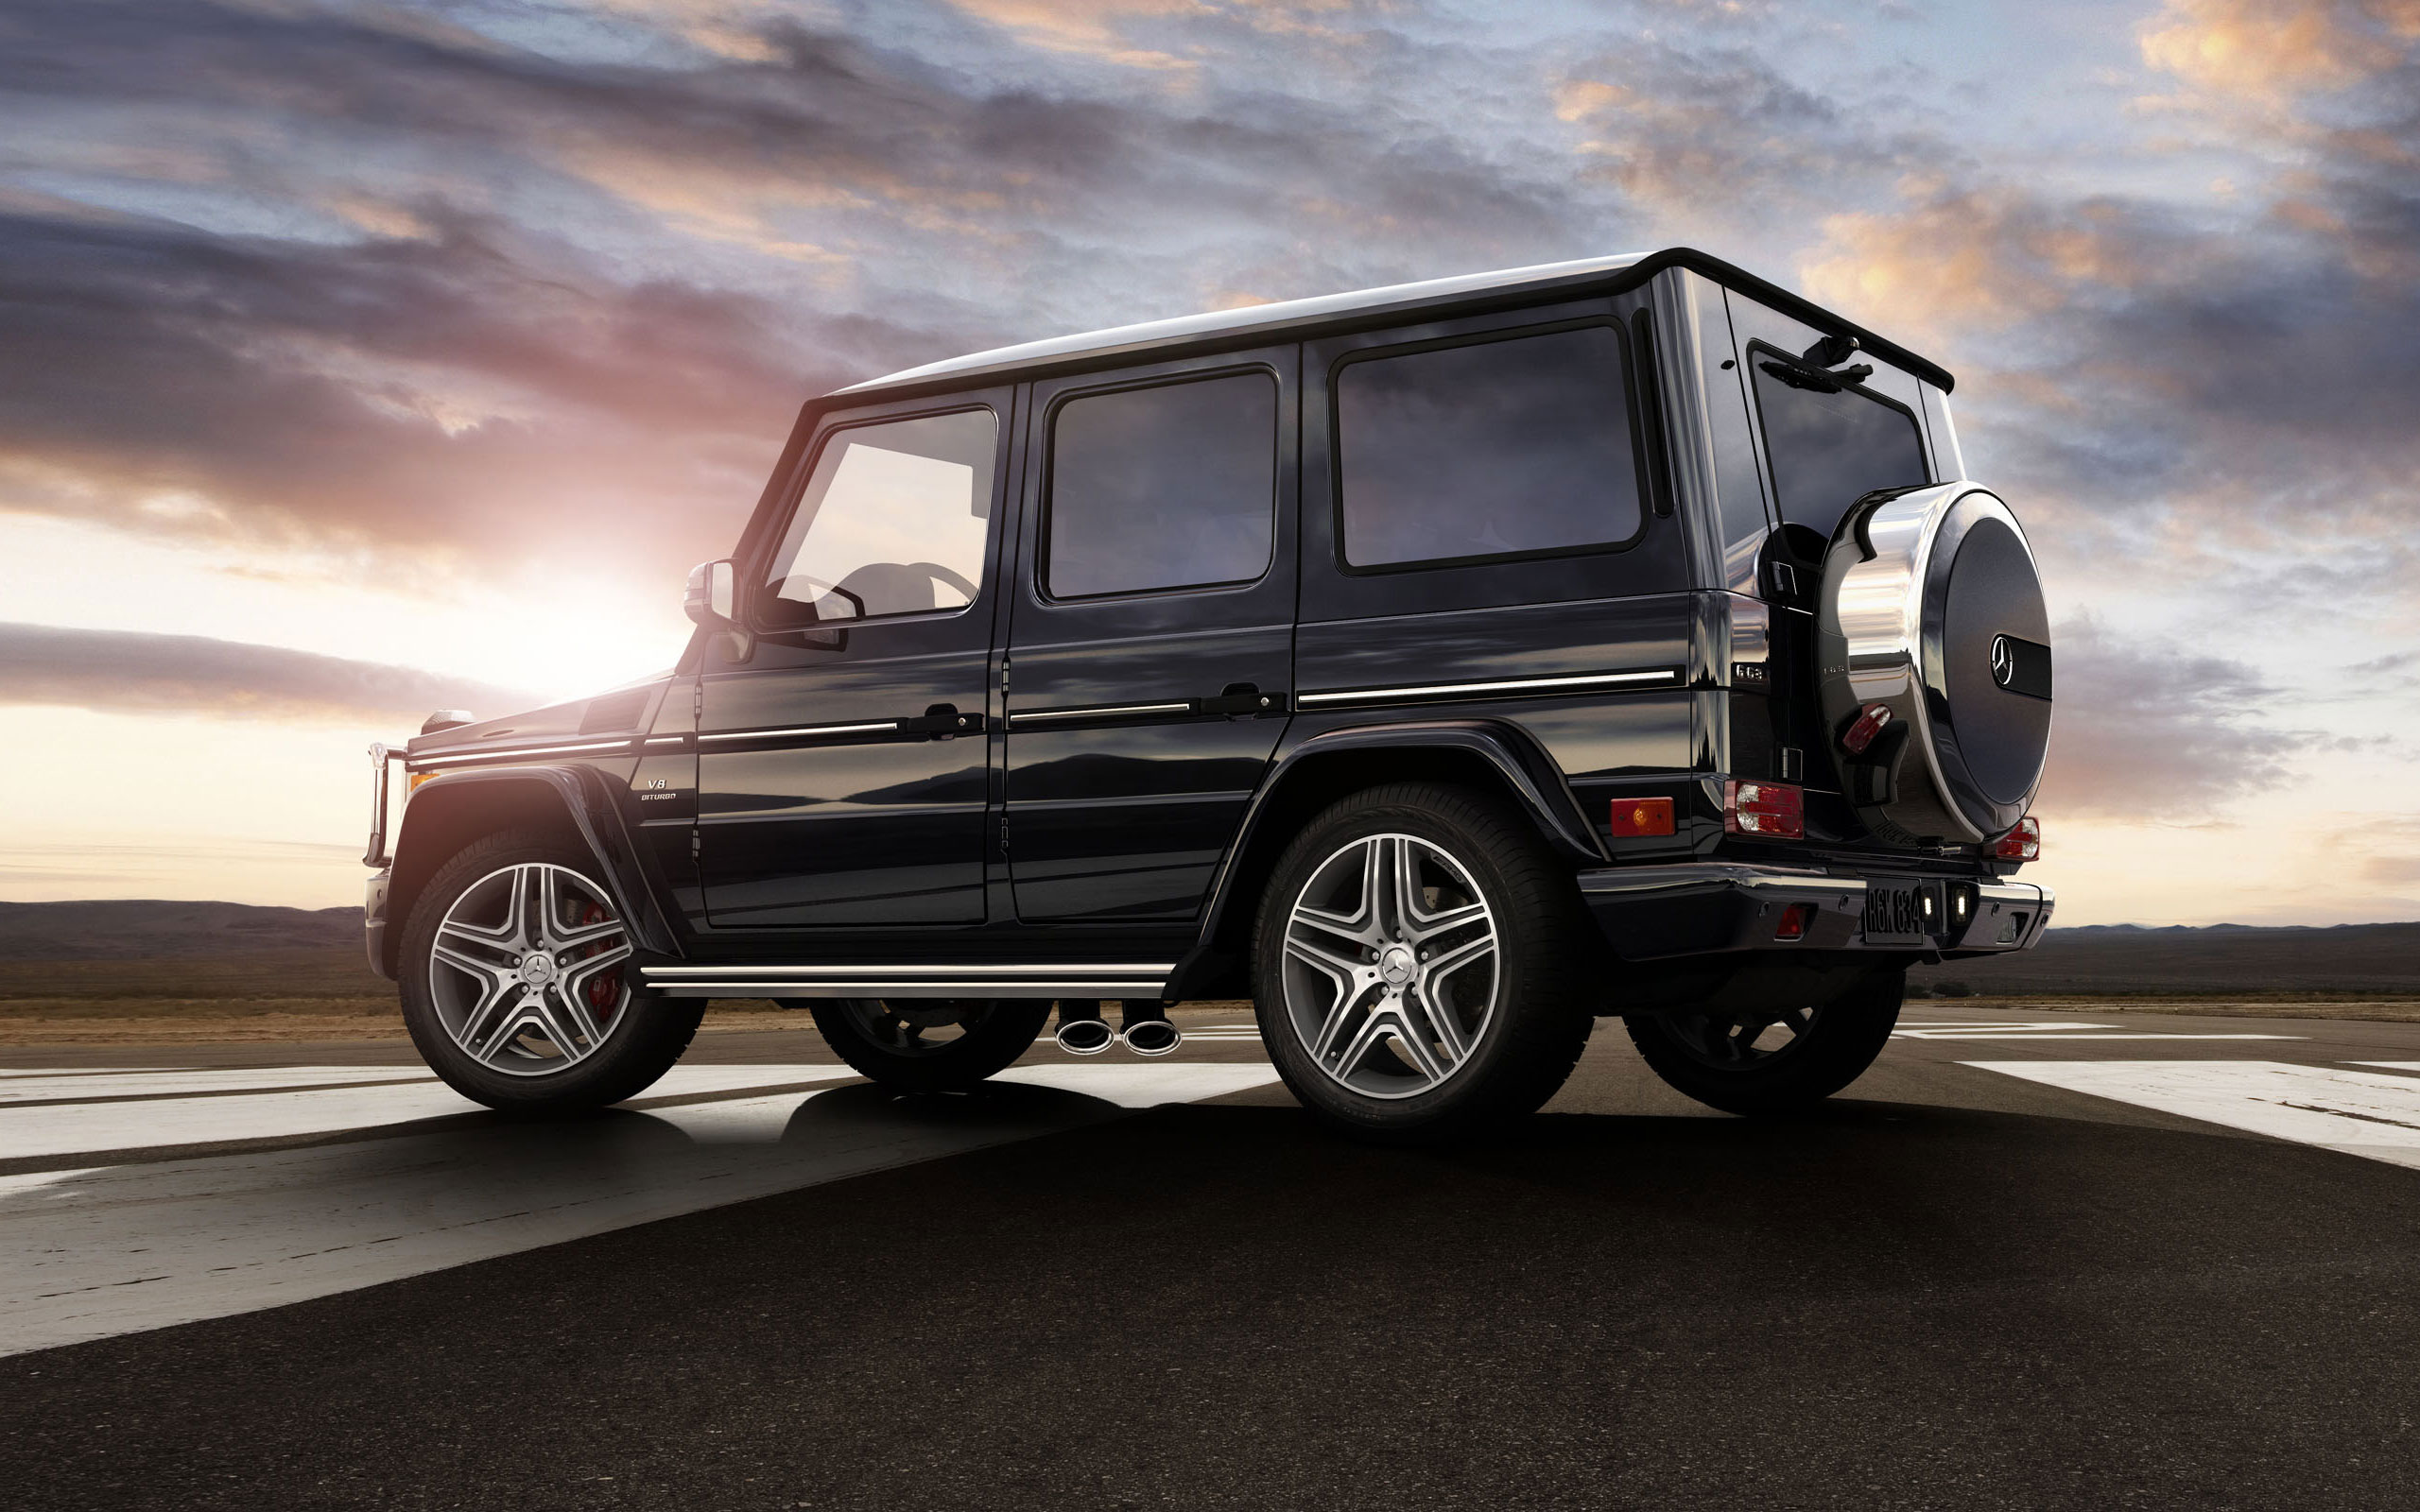 Most Viewed Mercedes Benz G Class Wallpapers 4k Wallpapers Images, Photos, Reviews